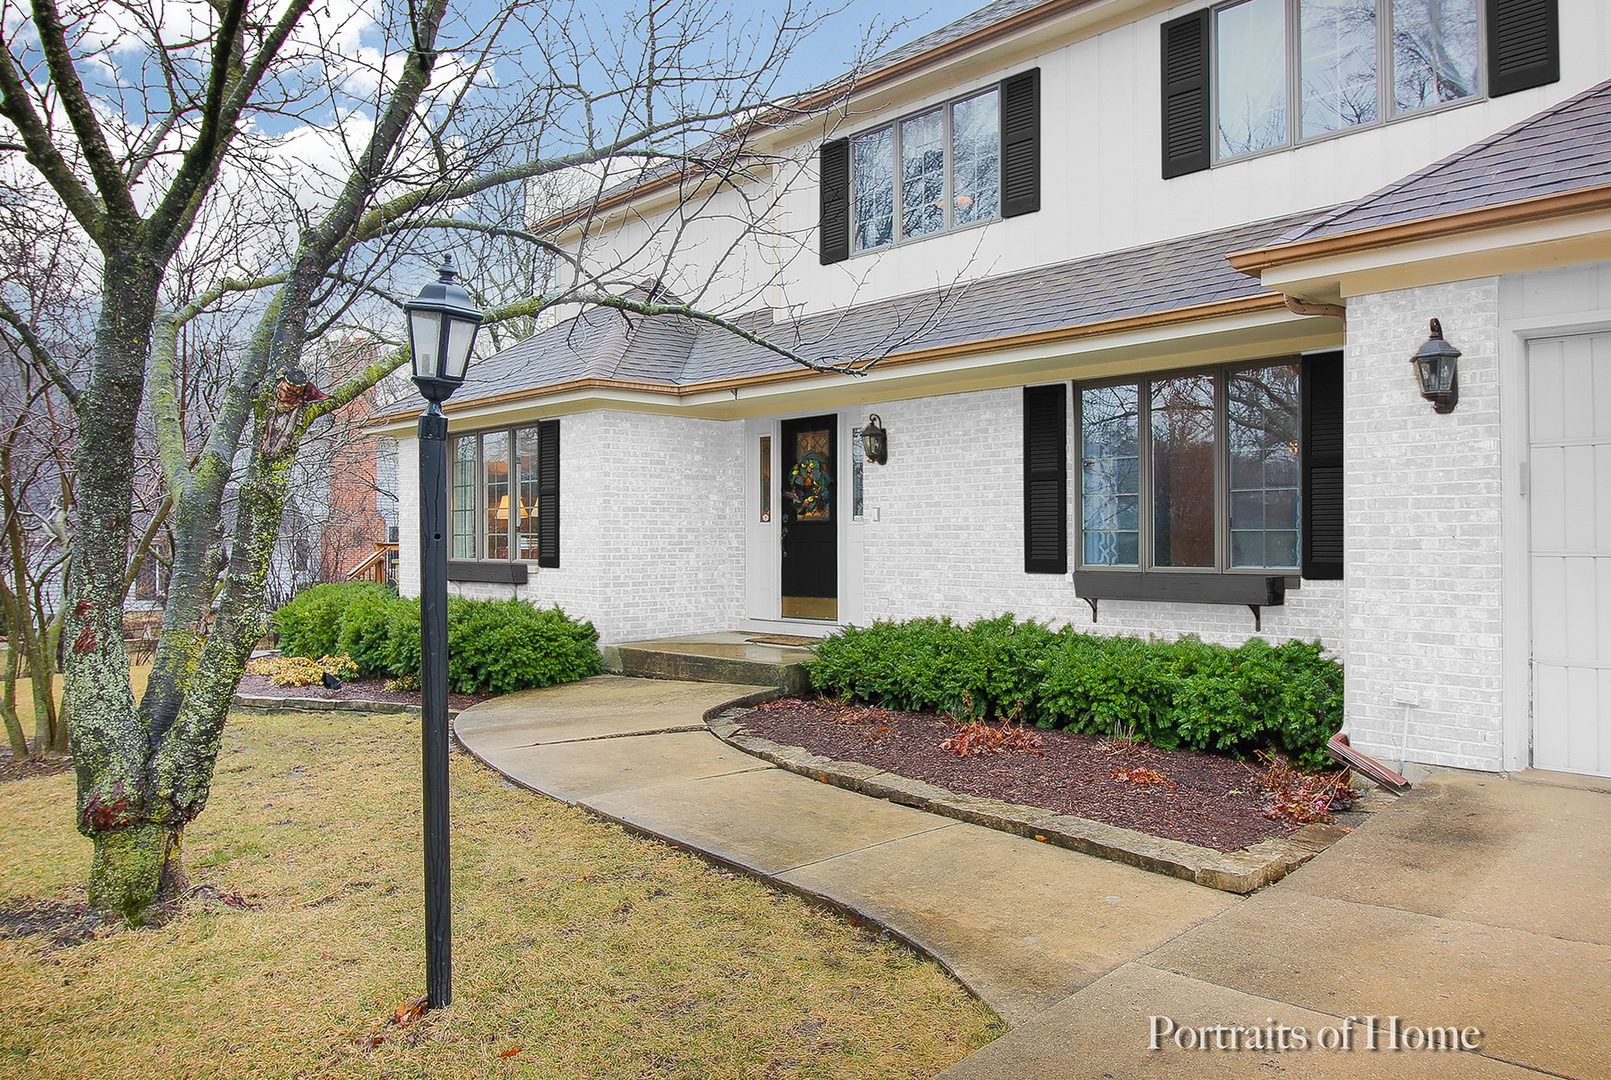 5803 South Garfield Street, Hinsdale, Illinois 60521